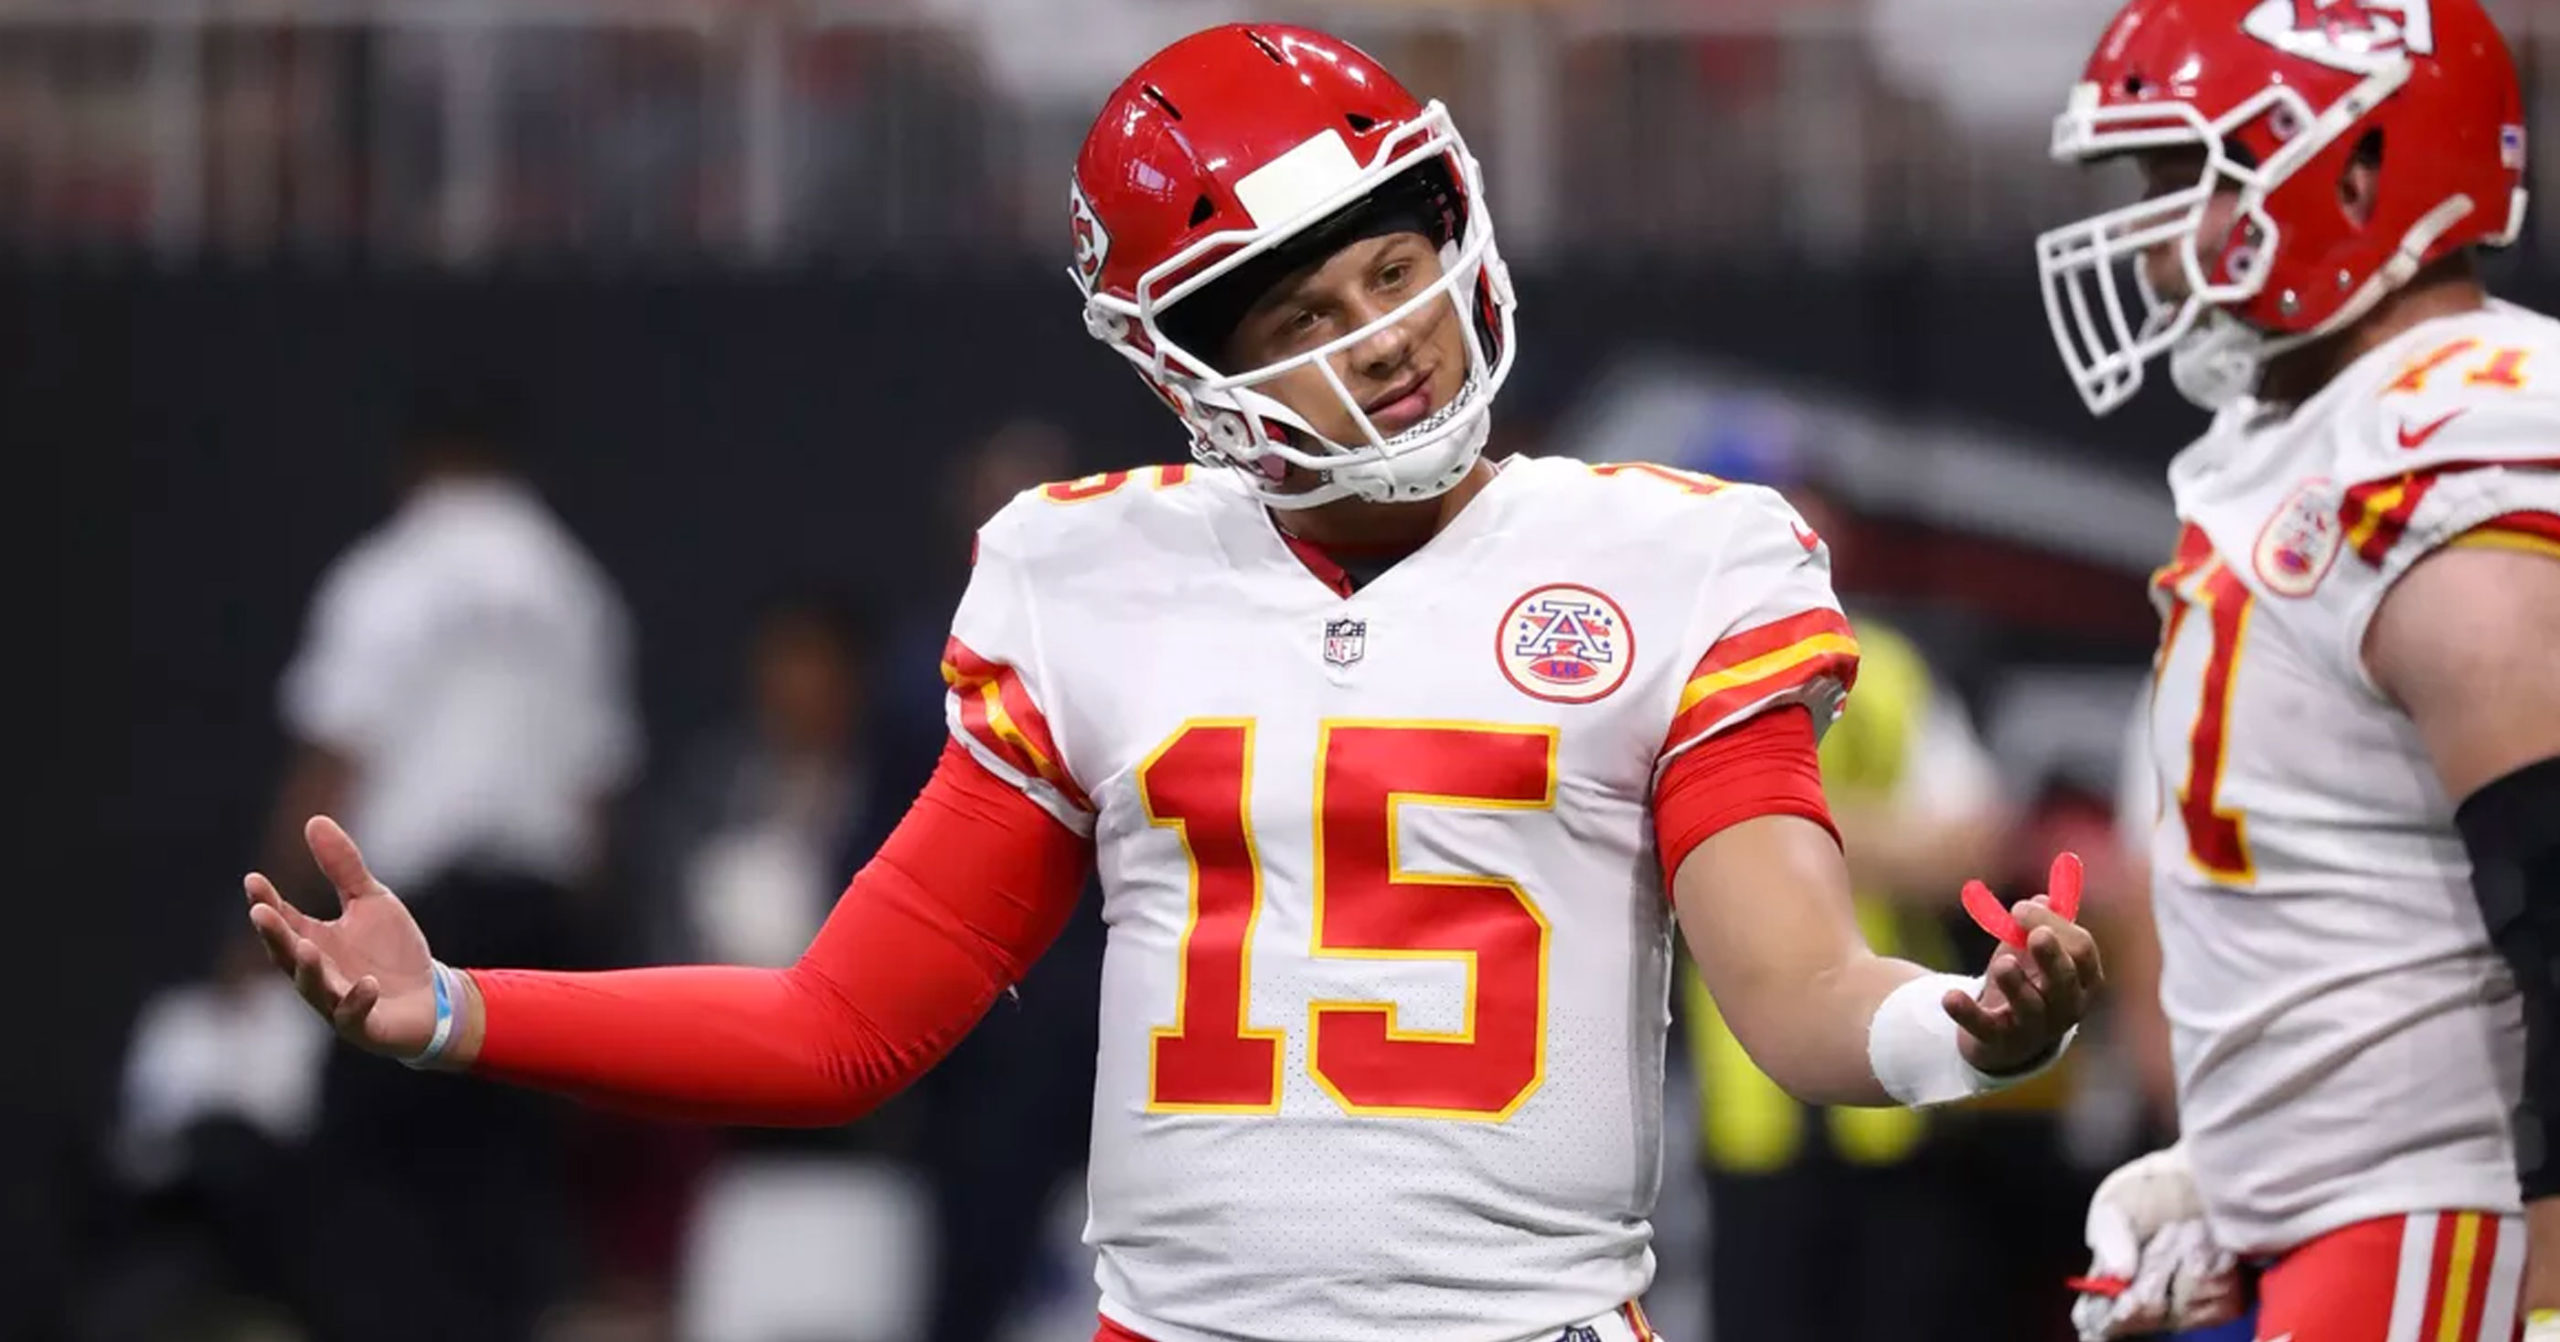 Patrick Mahomes Playing for the Chiefs